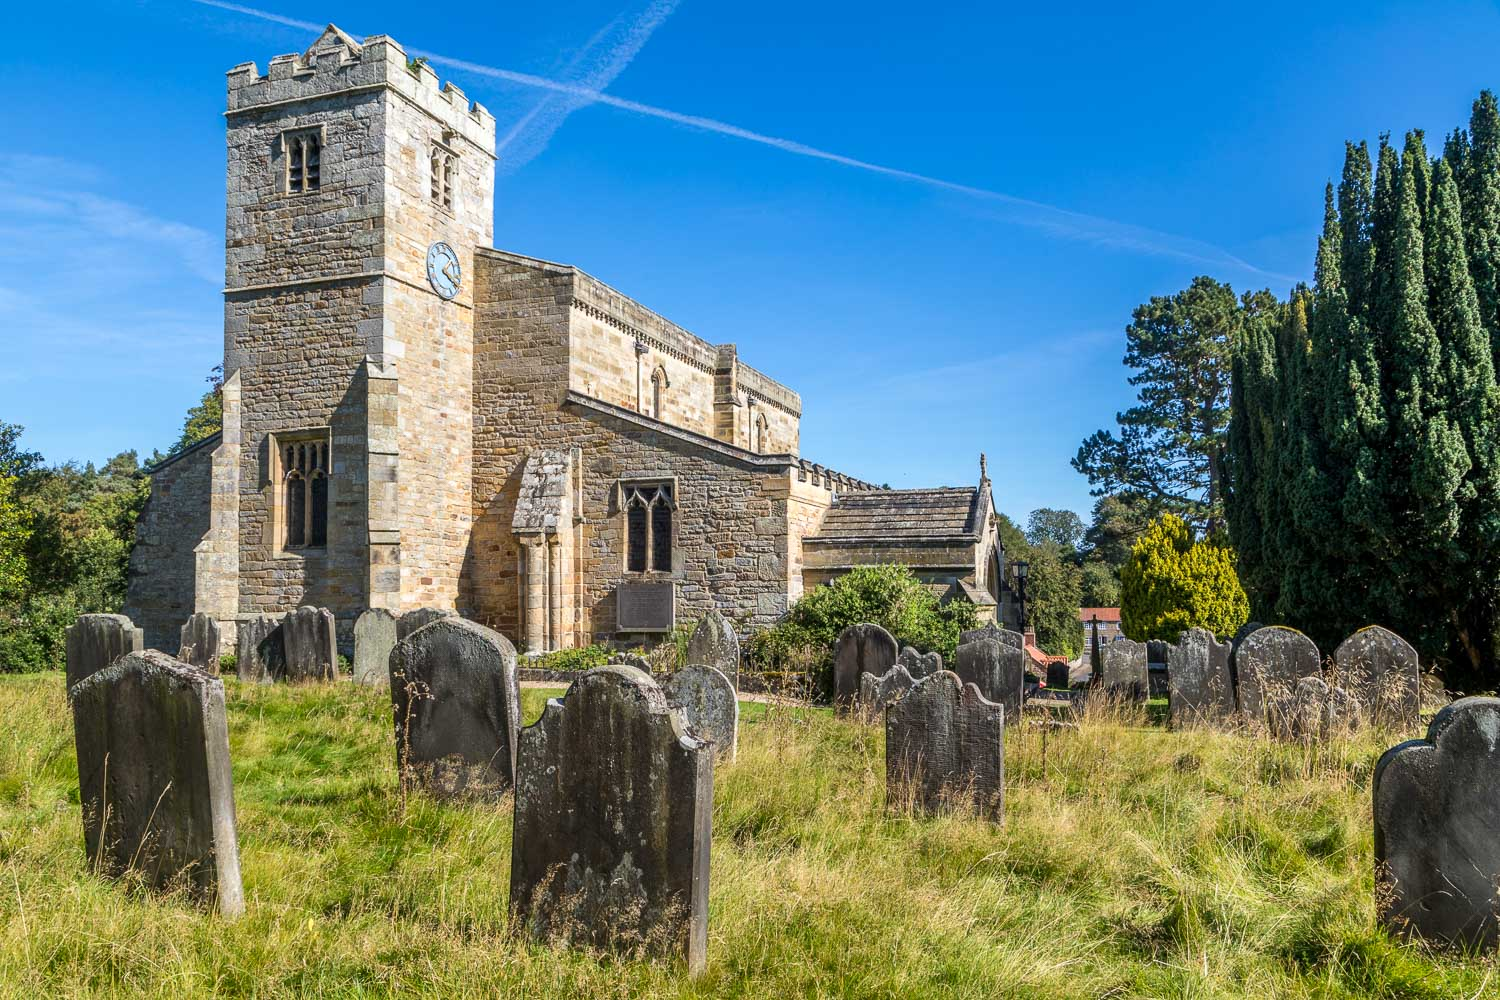 St Mary's Church Lastingham